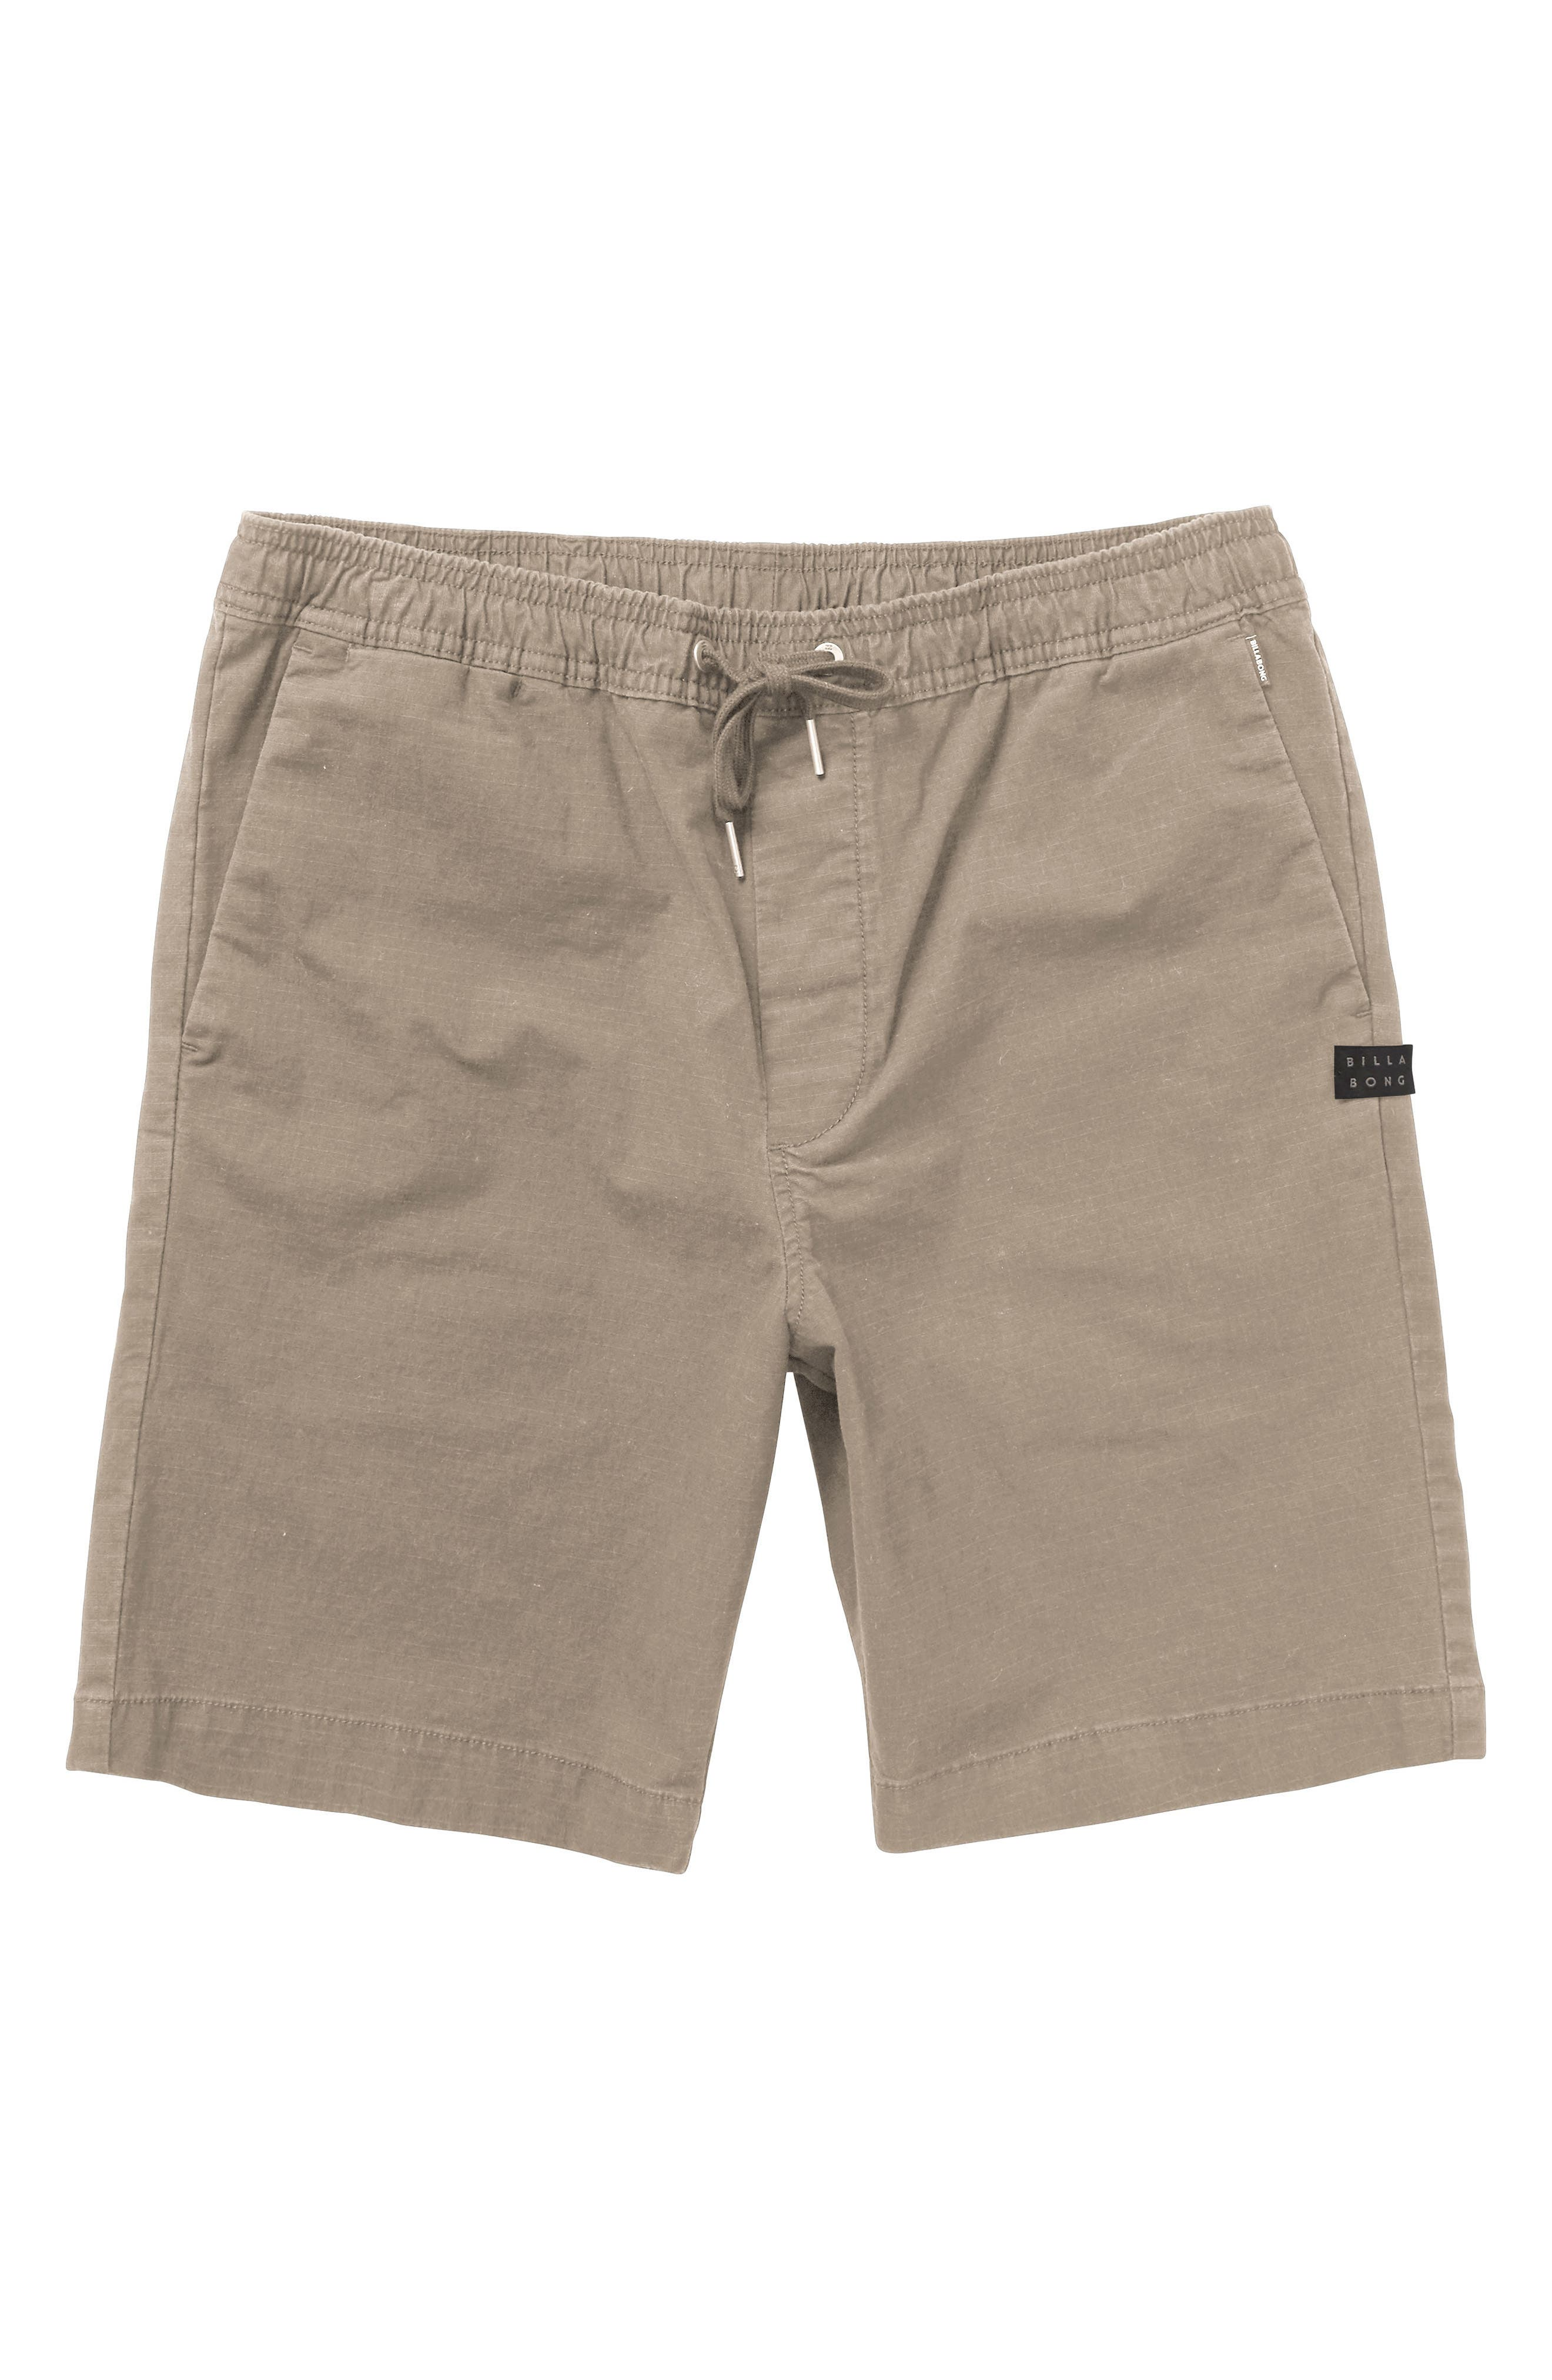 Larry Layback Shorts,                         Main,                         color, 260